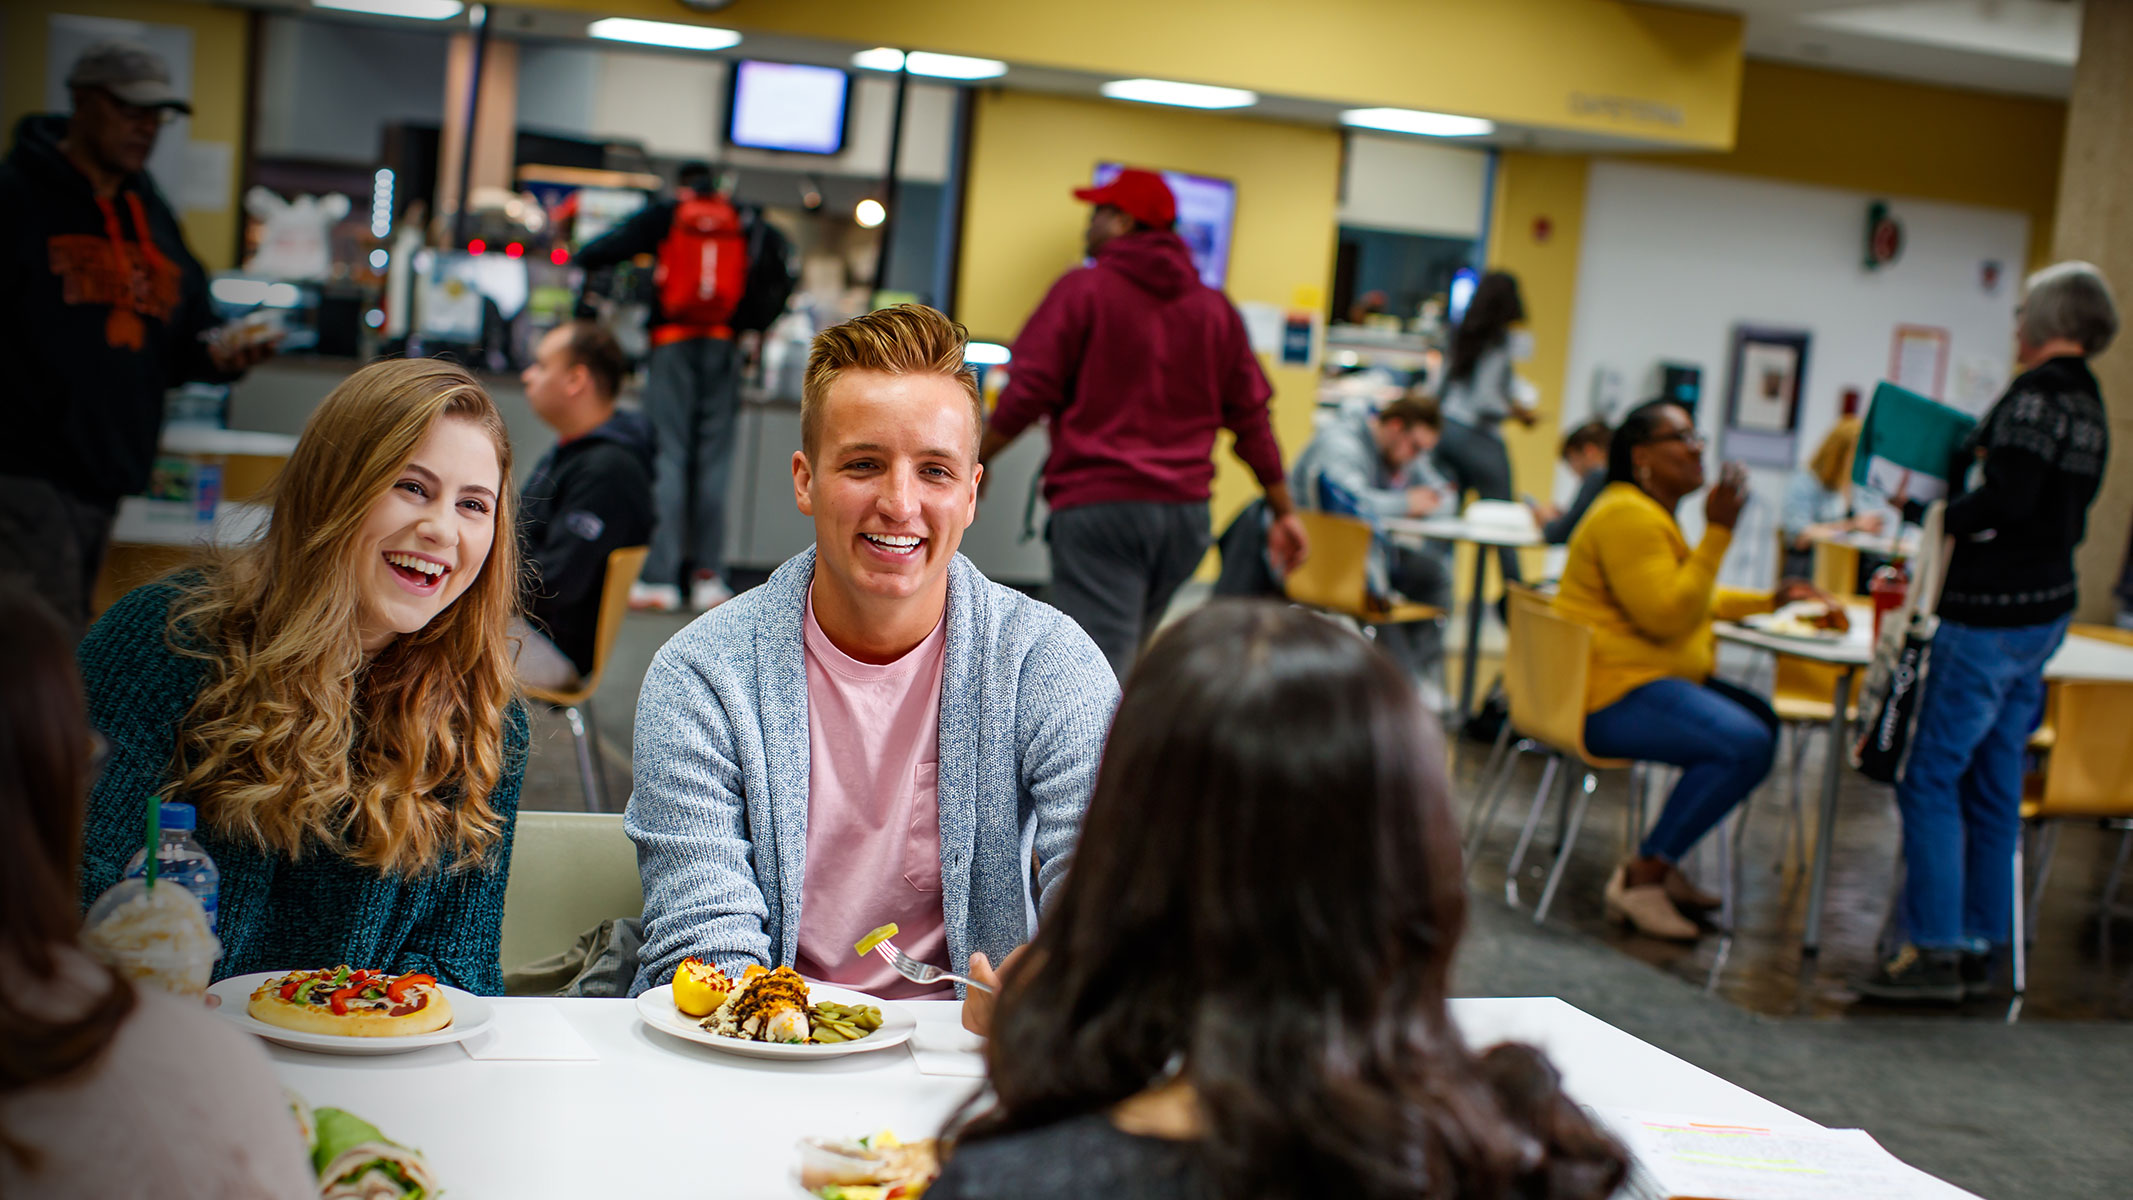 Students smiling in Cafeteria